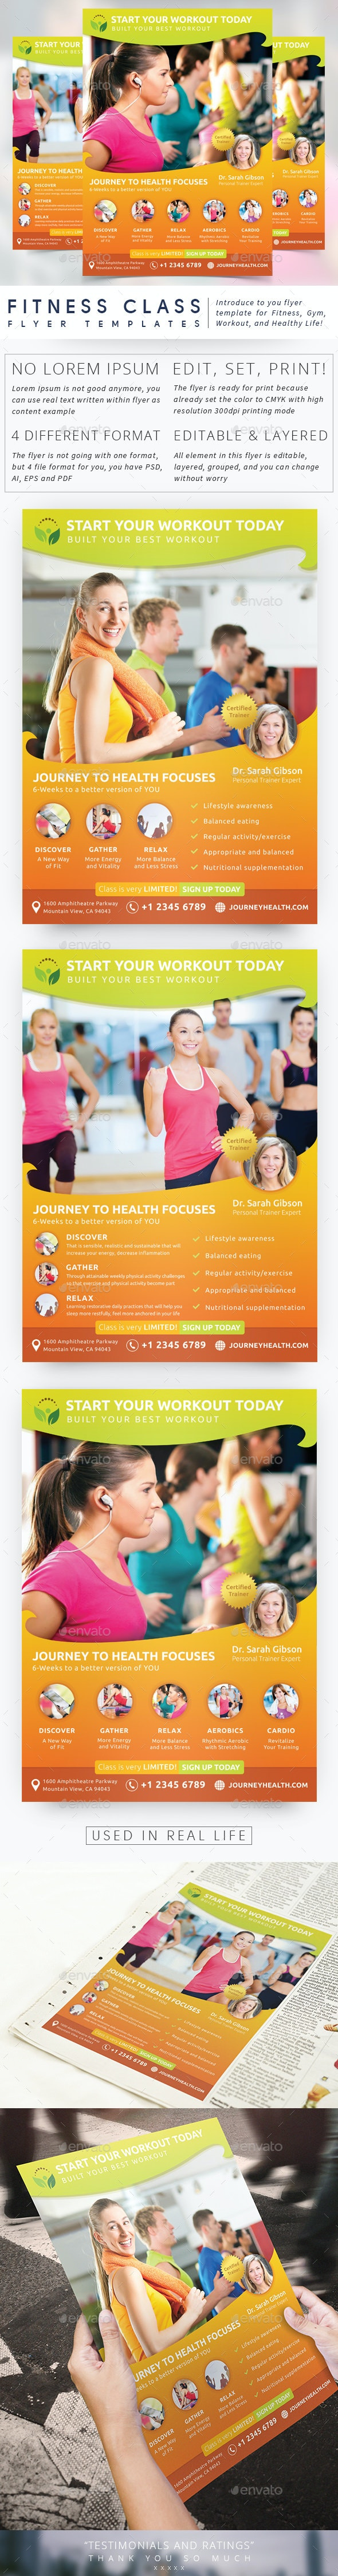 Fitness Class Flyer - Sports Events